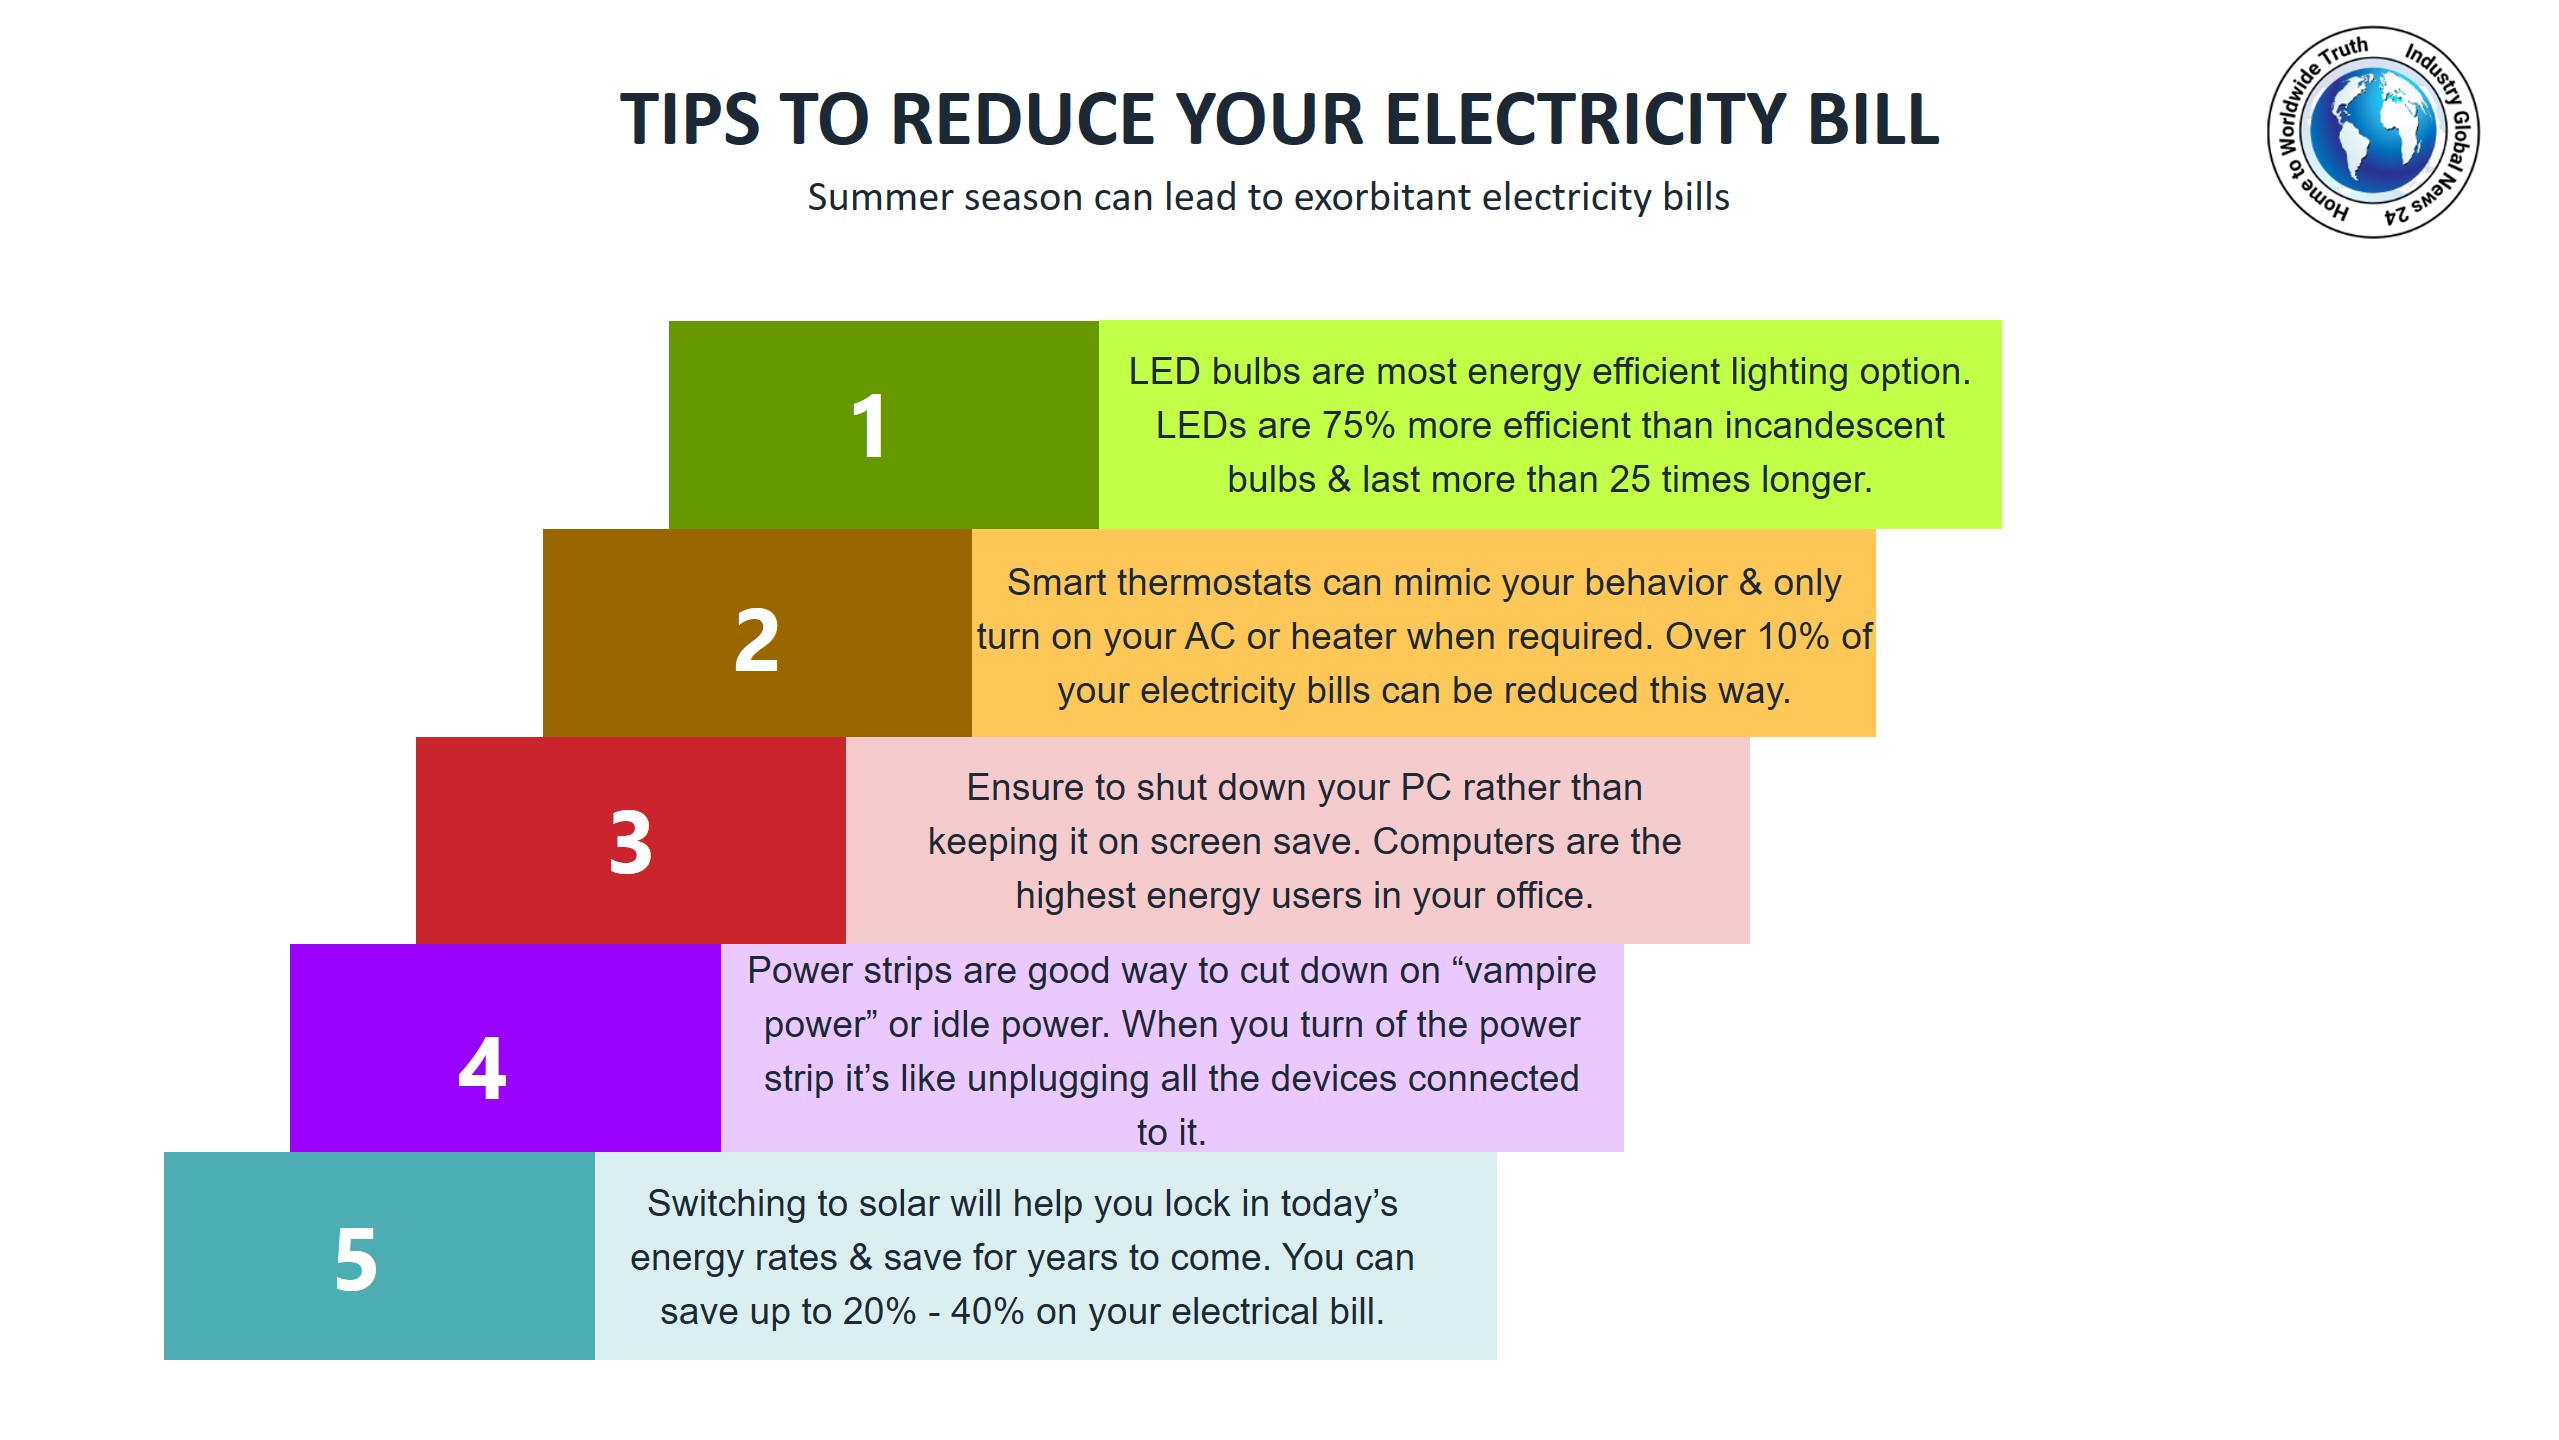 Tips to reduce your electricity bill